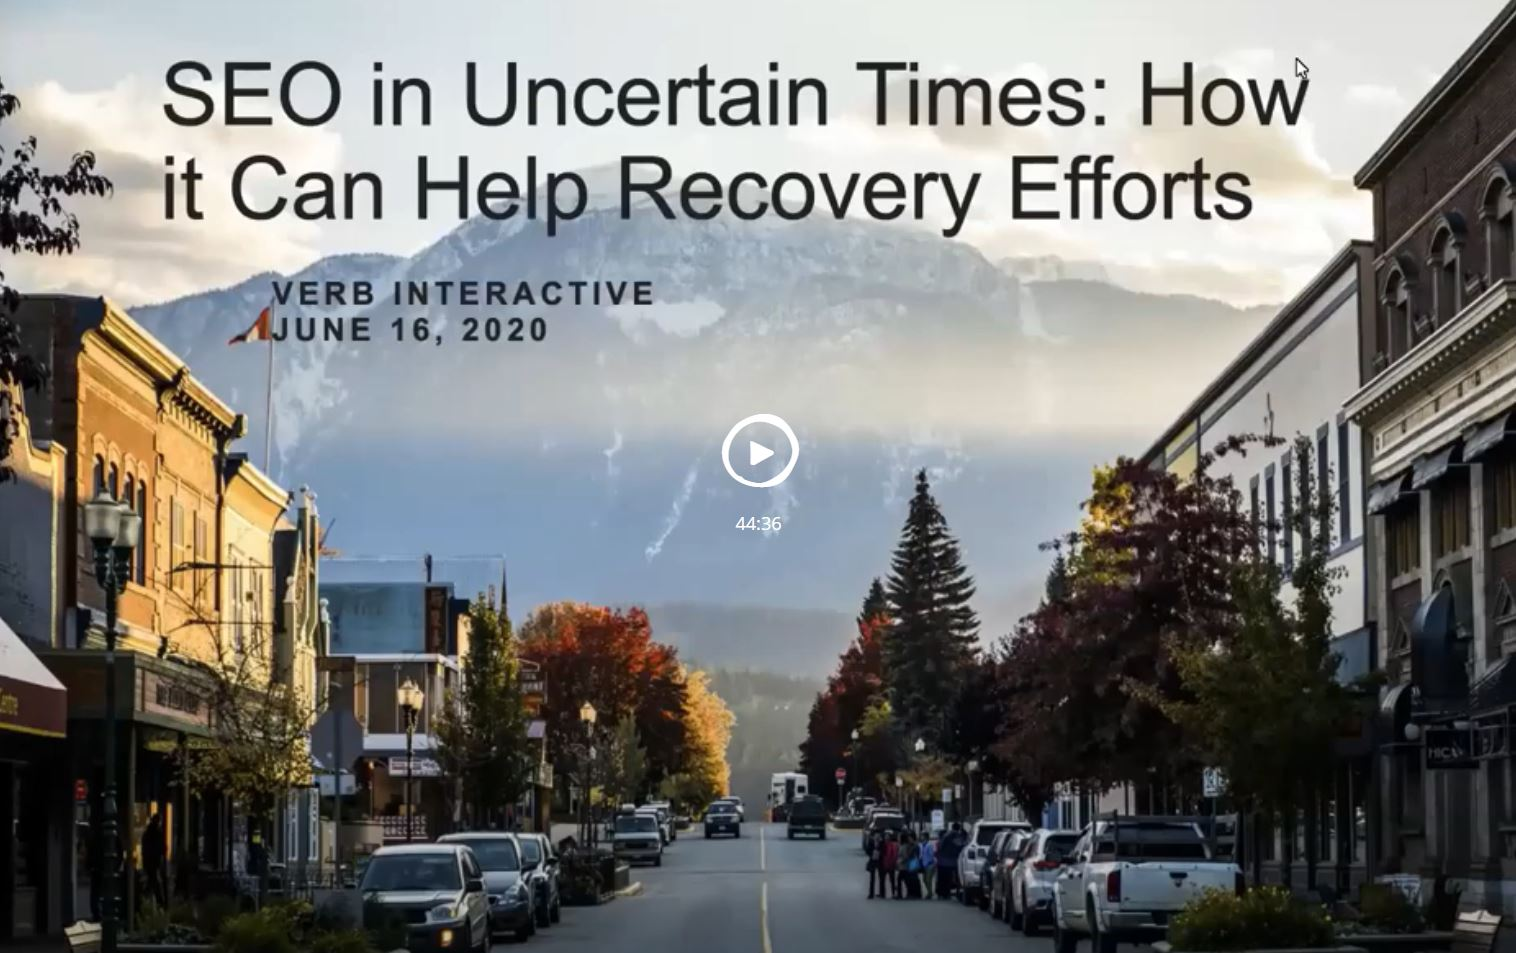 SEO in Uncertain Times: How it Can Help Recovery Efforts